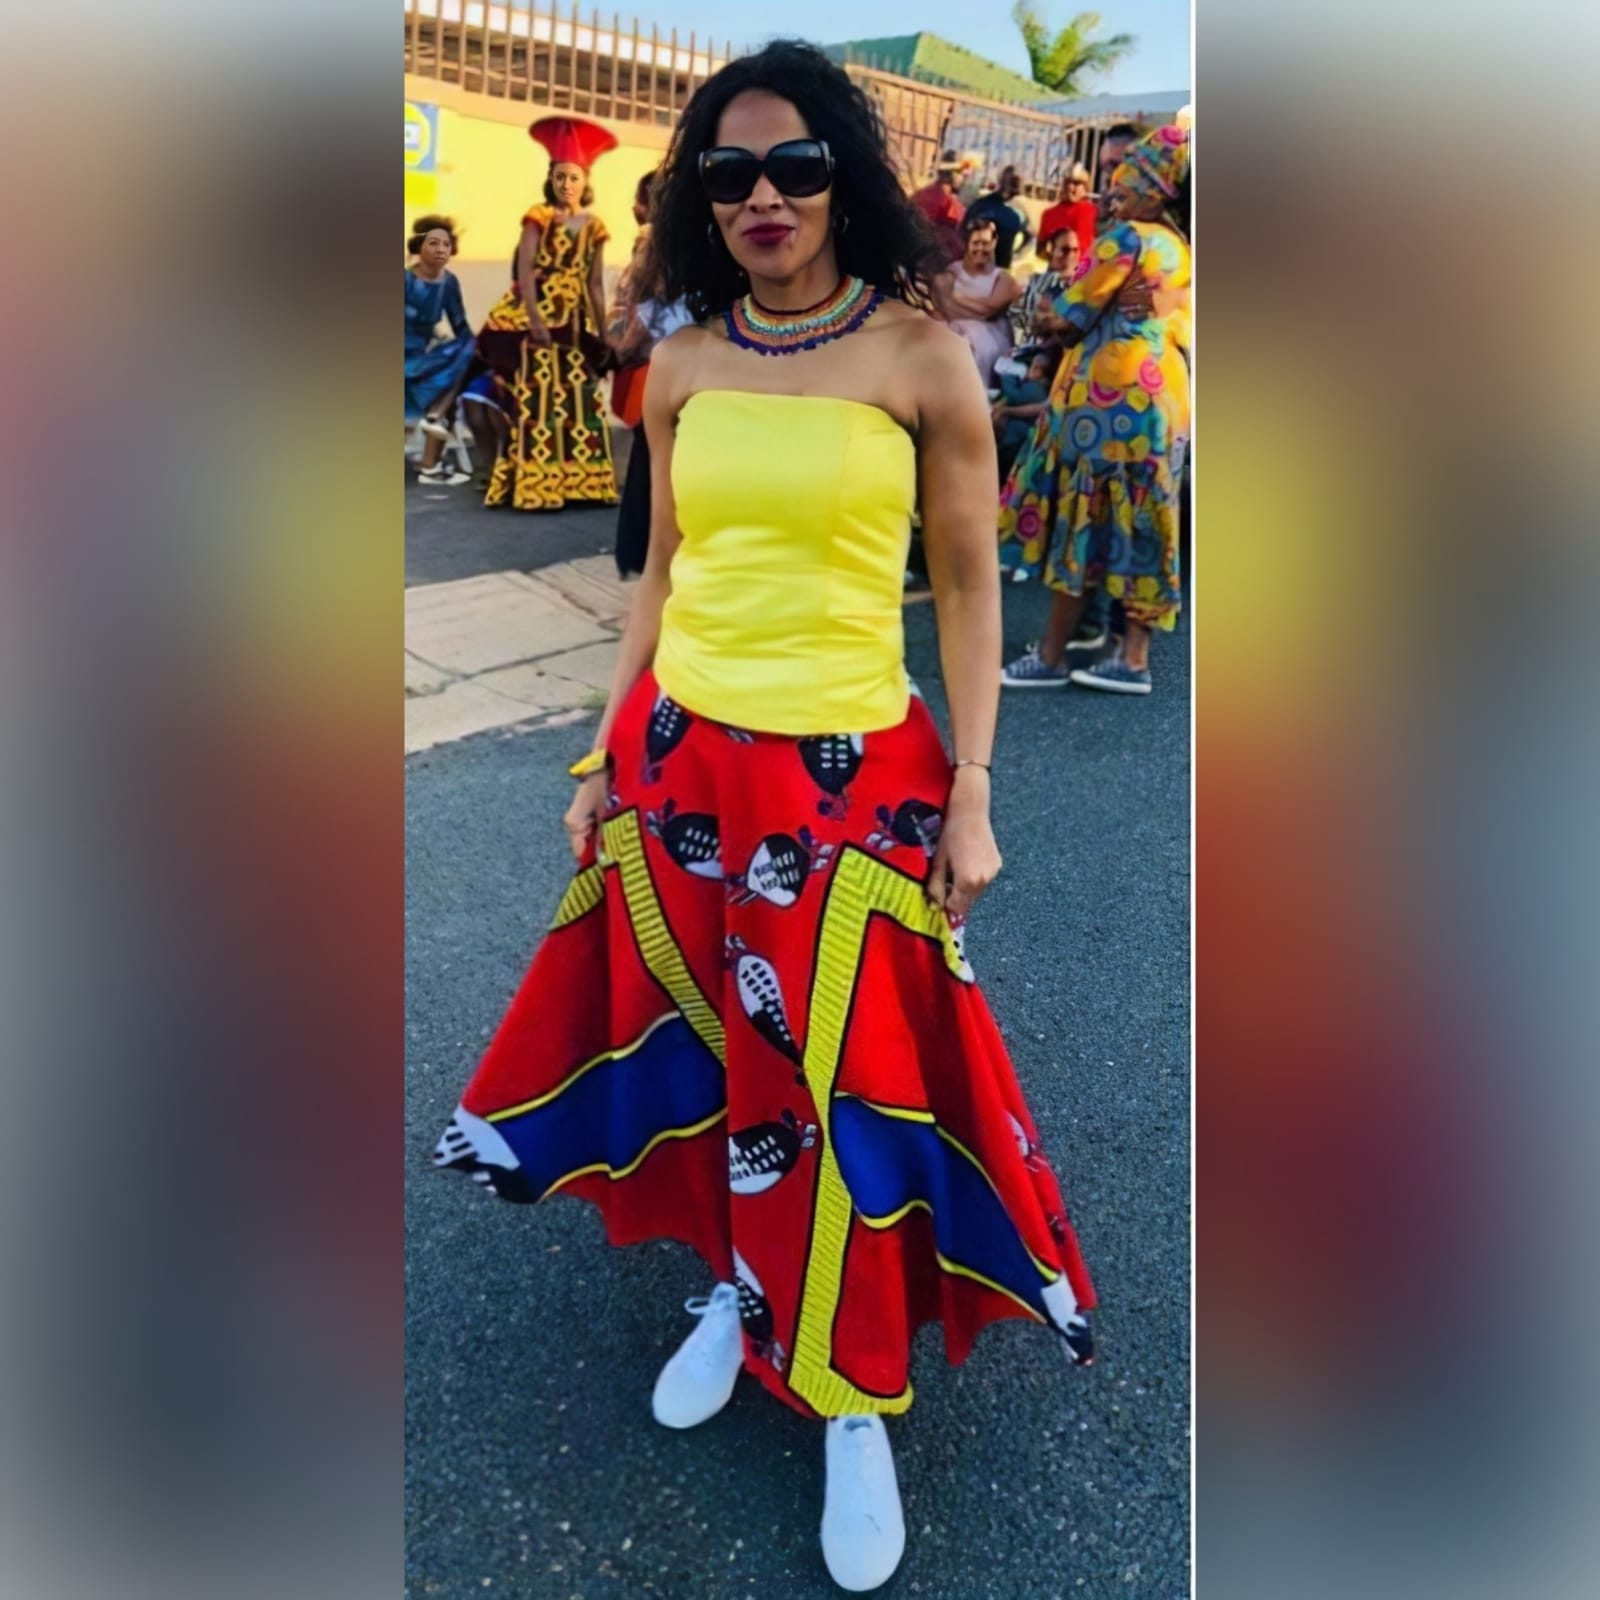 African traditional 2 piece outfit skirt and top 1 african traditional 2 piece outfit skirt and top. Red swati wide skirt with a high waisted effect. Boobtube yellow satin top with a lace-up back